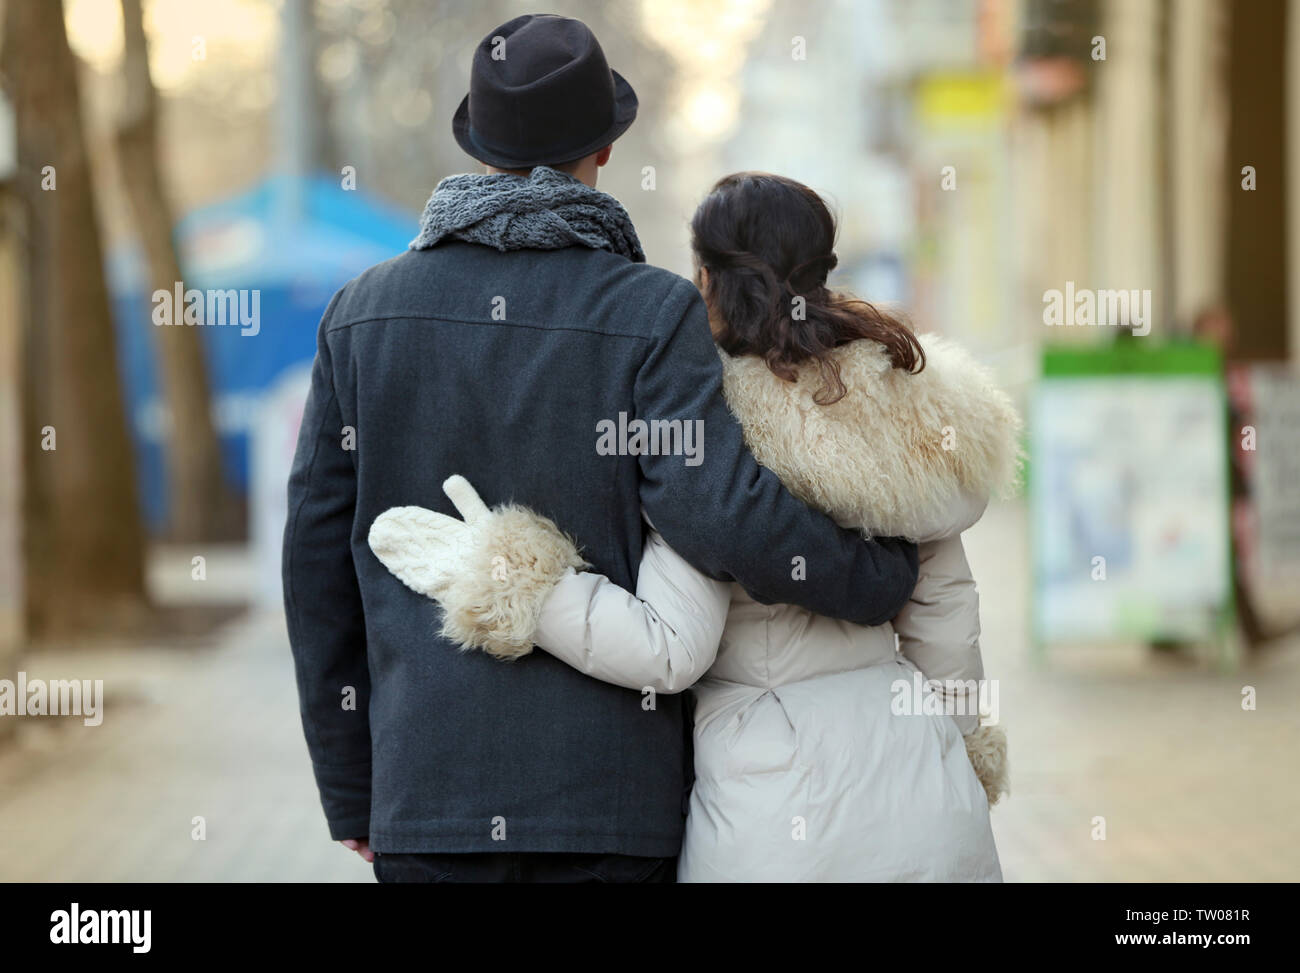 Young couple walking on the street - Stock Image